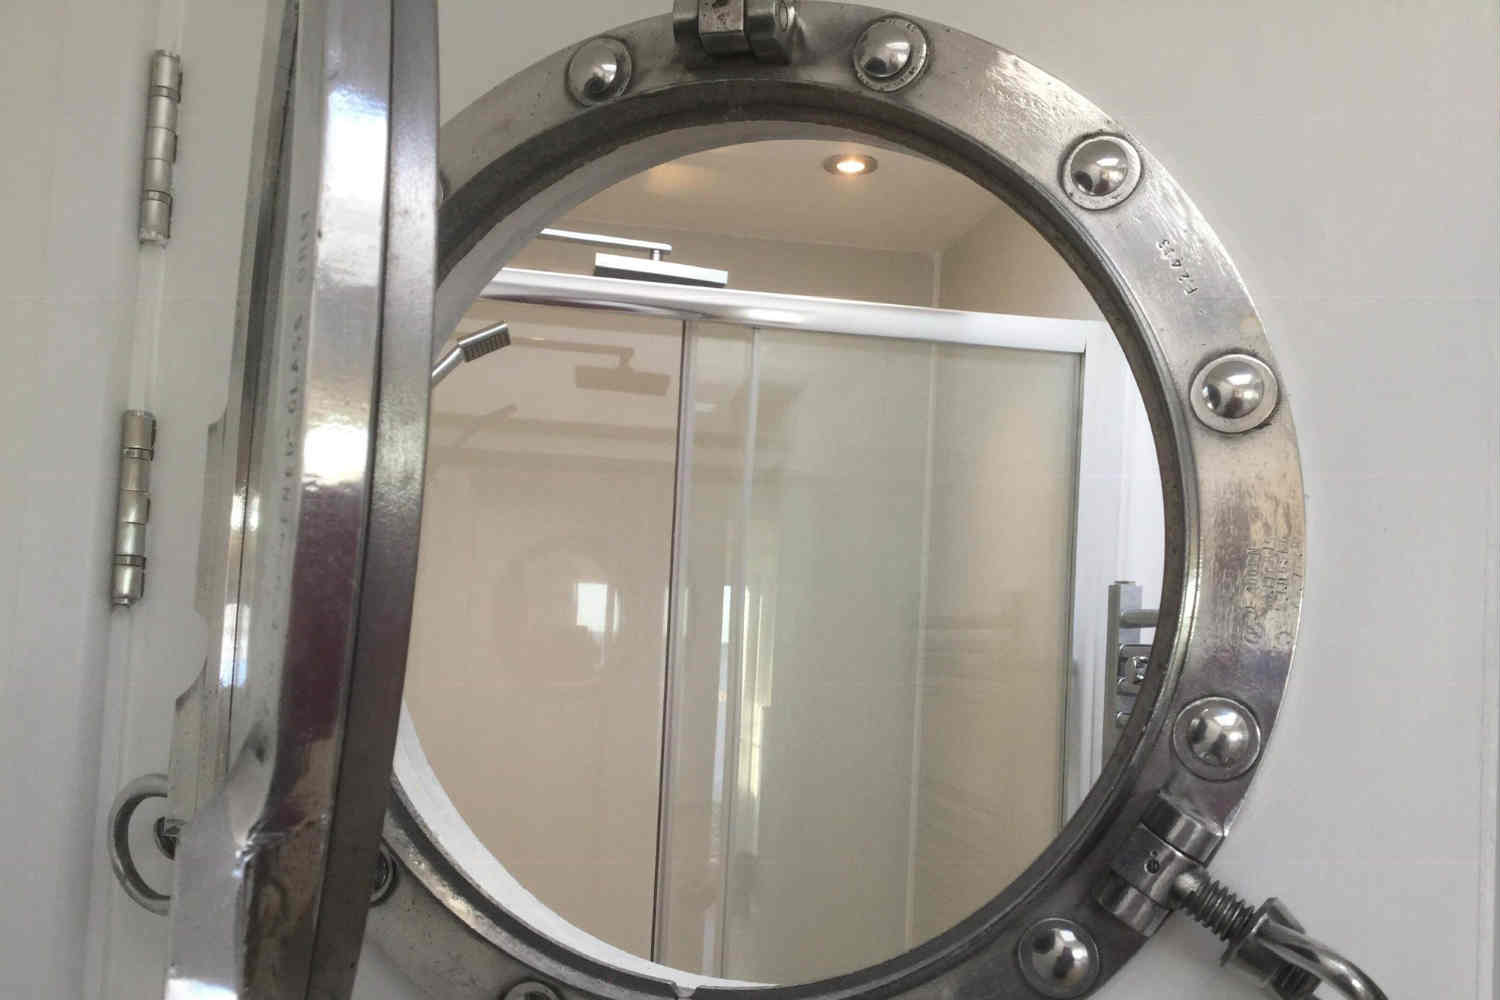 Porthole to allow sea views from the shower